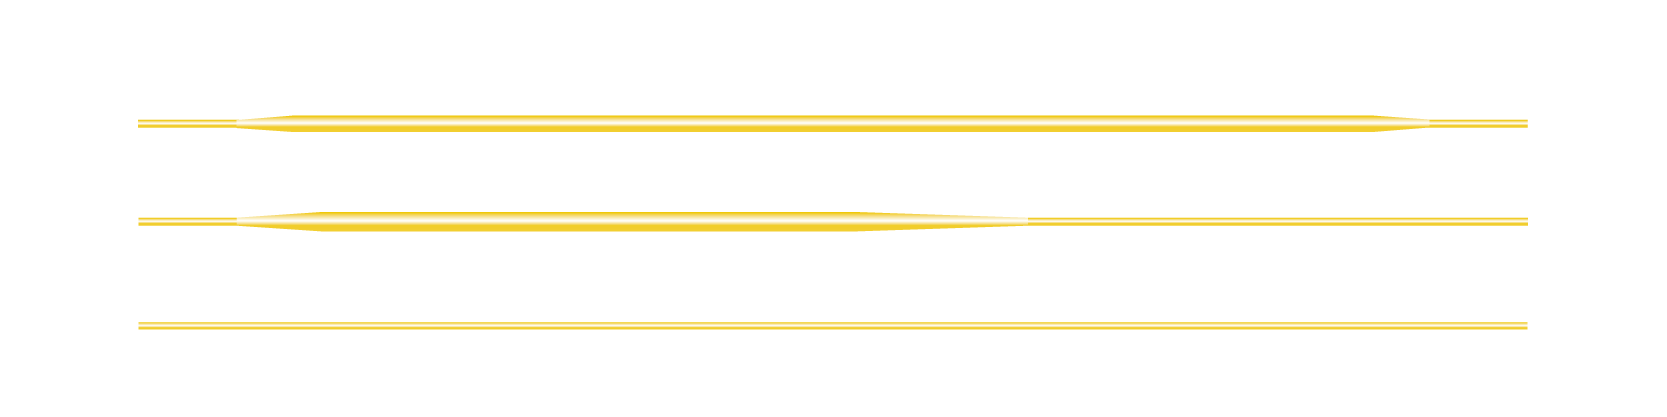 Fliegenschnur WF weight Forward DT Double Taper LL Parallel Line Running Line